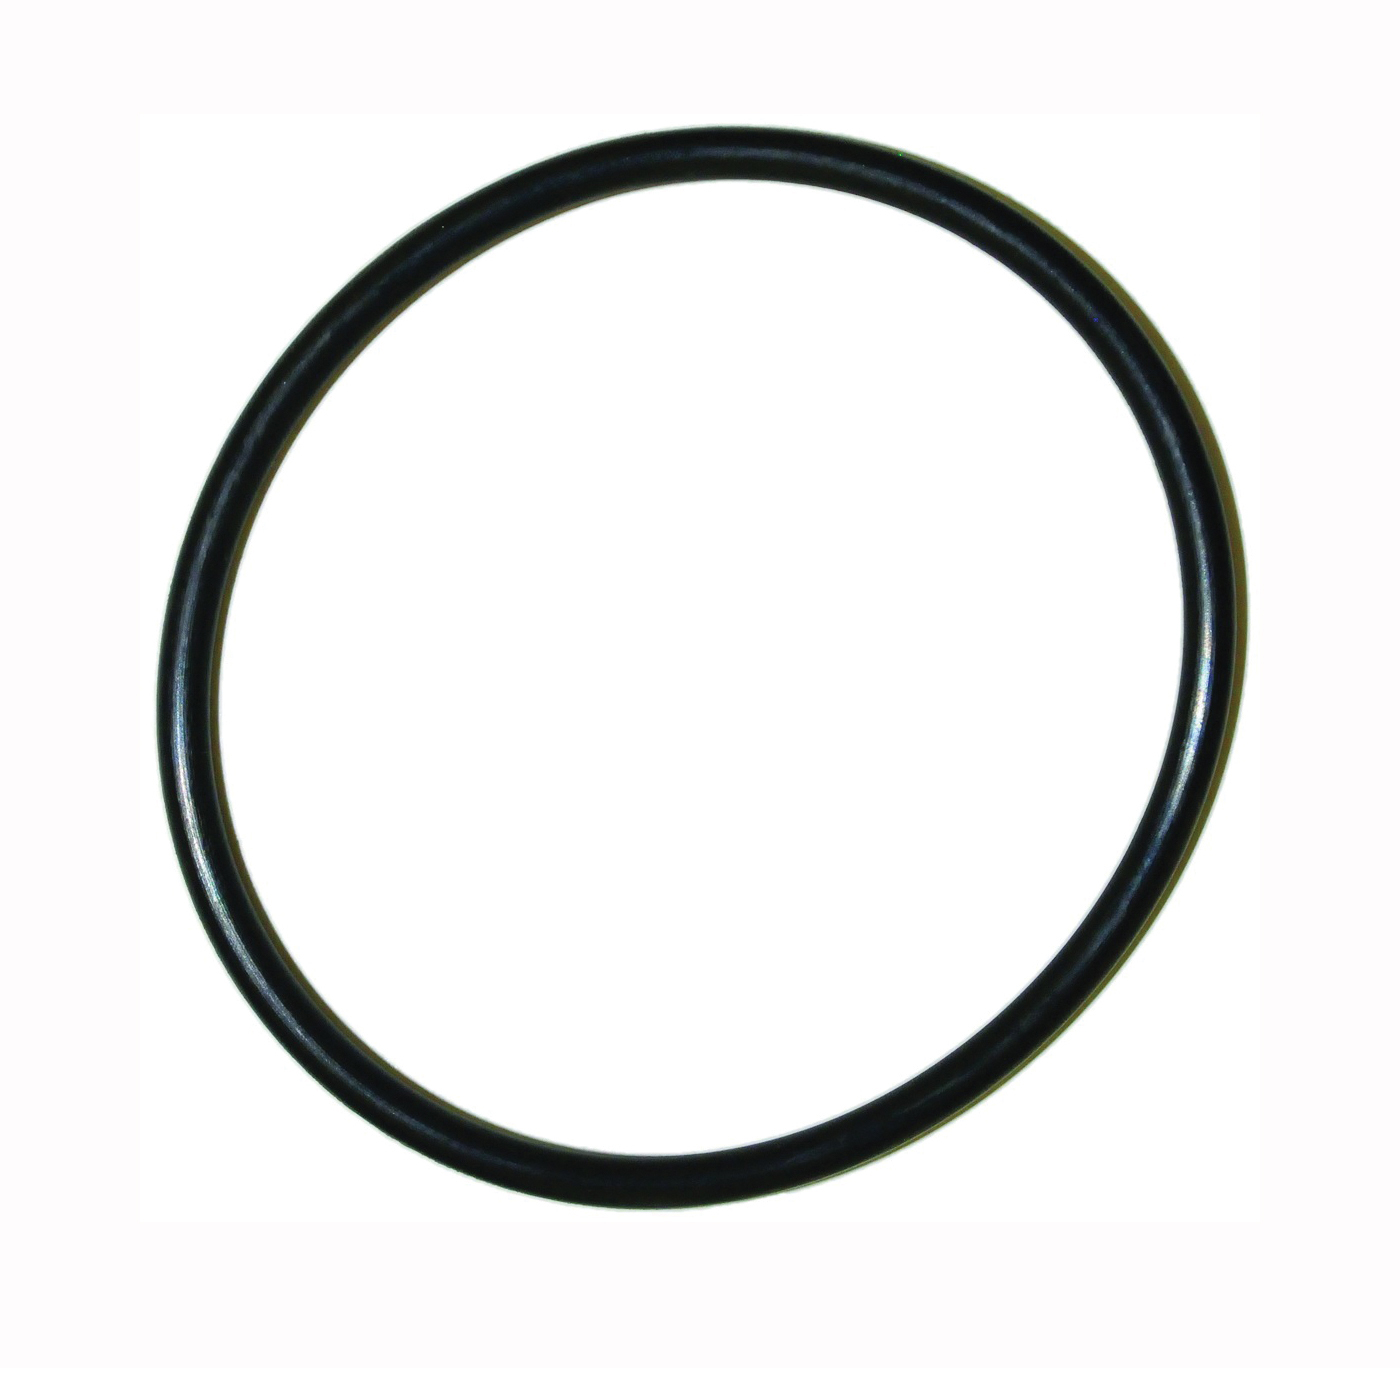 Picture of Danco 35706B Faucet O-Ring, #88, 1-5/16 in ID x 2-1/8 in OD Dia, 3/32 in Thick, Buna-N, For: Various Faucets